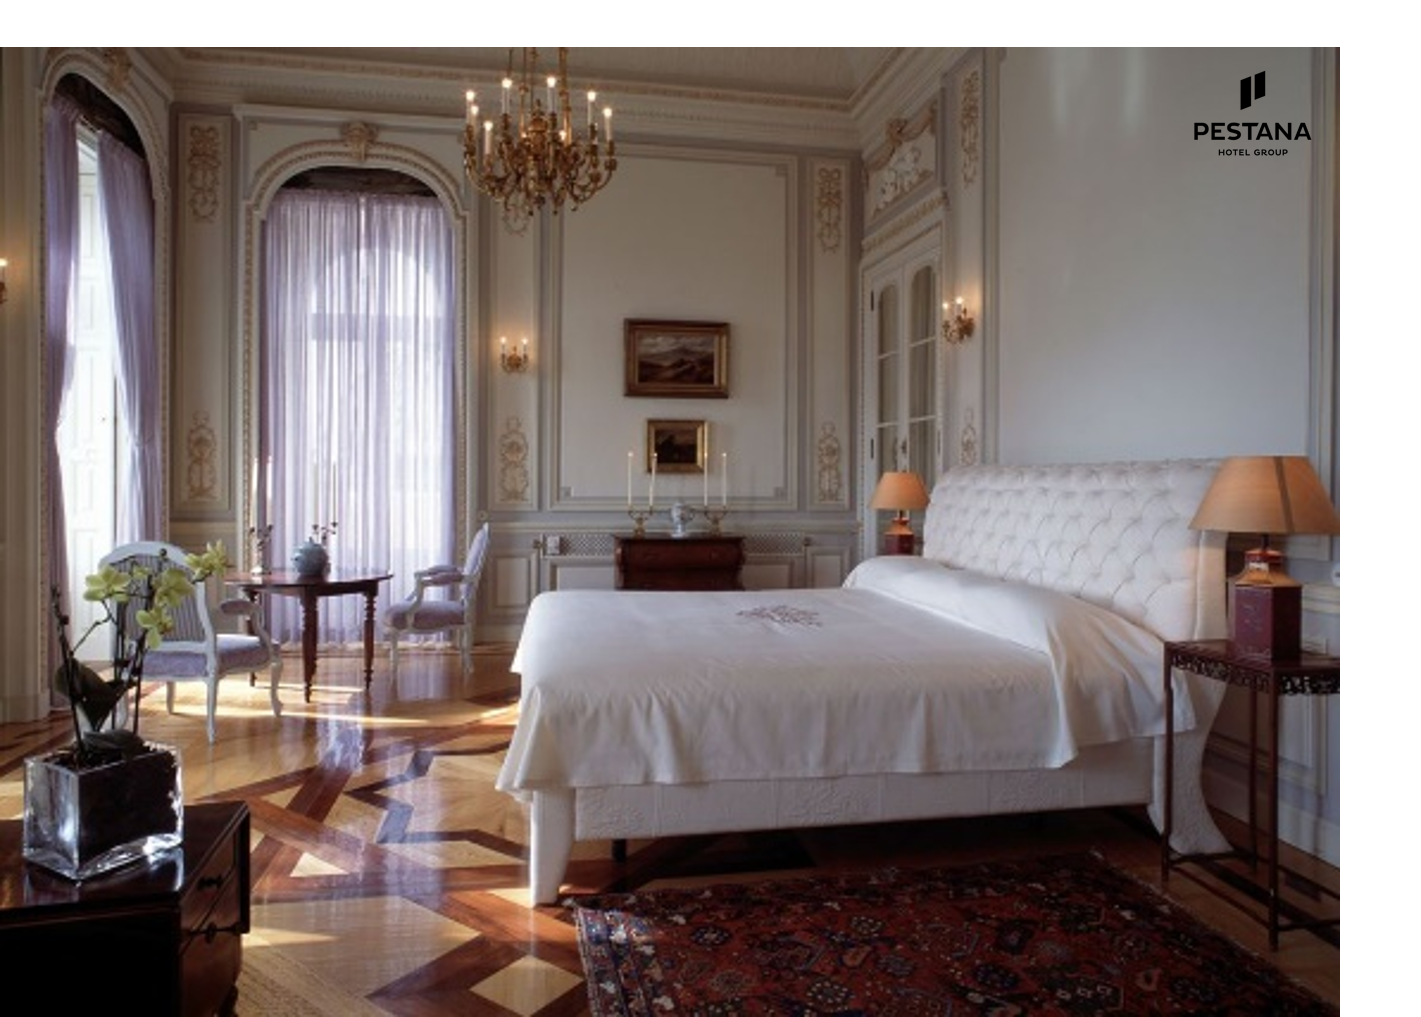 Luxury Room | Pestana Palace | Hotel | Portugal | Bedroom Design